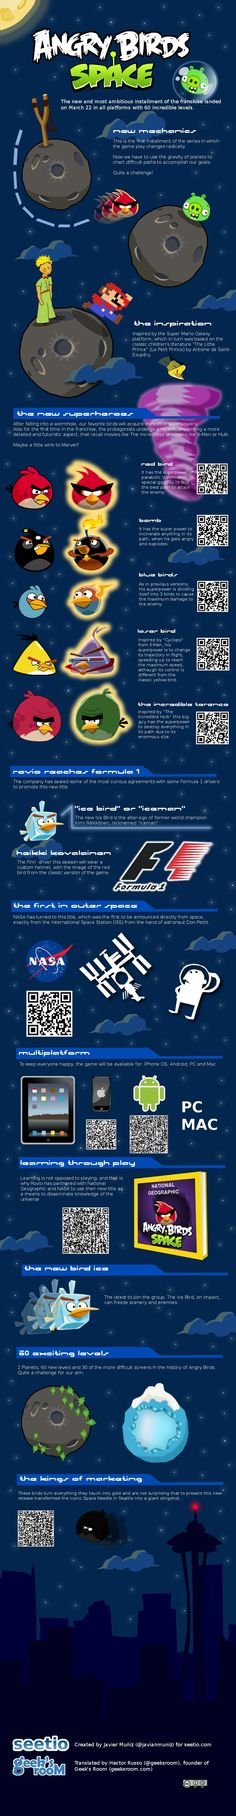 Angry Birds Space Reminds us of 10 Million Cool Things [Infographic]